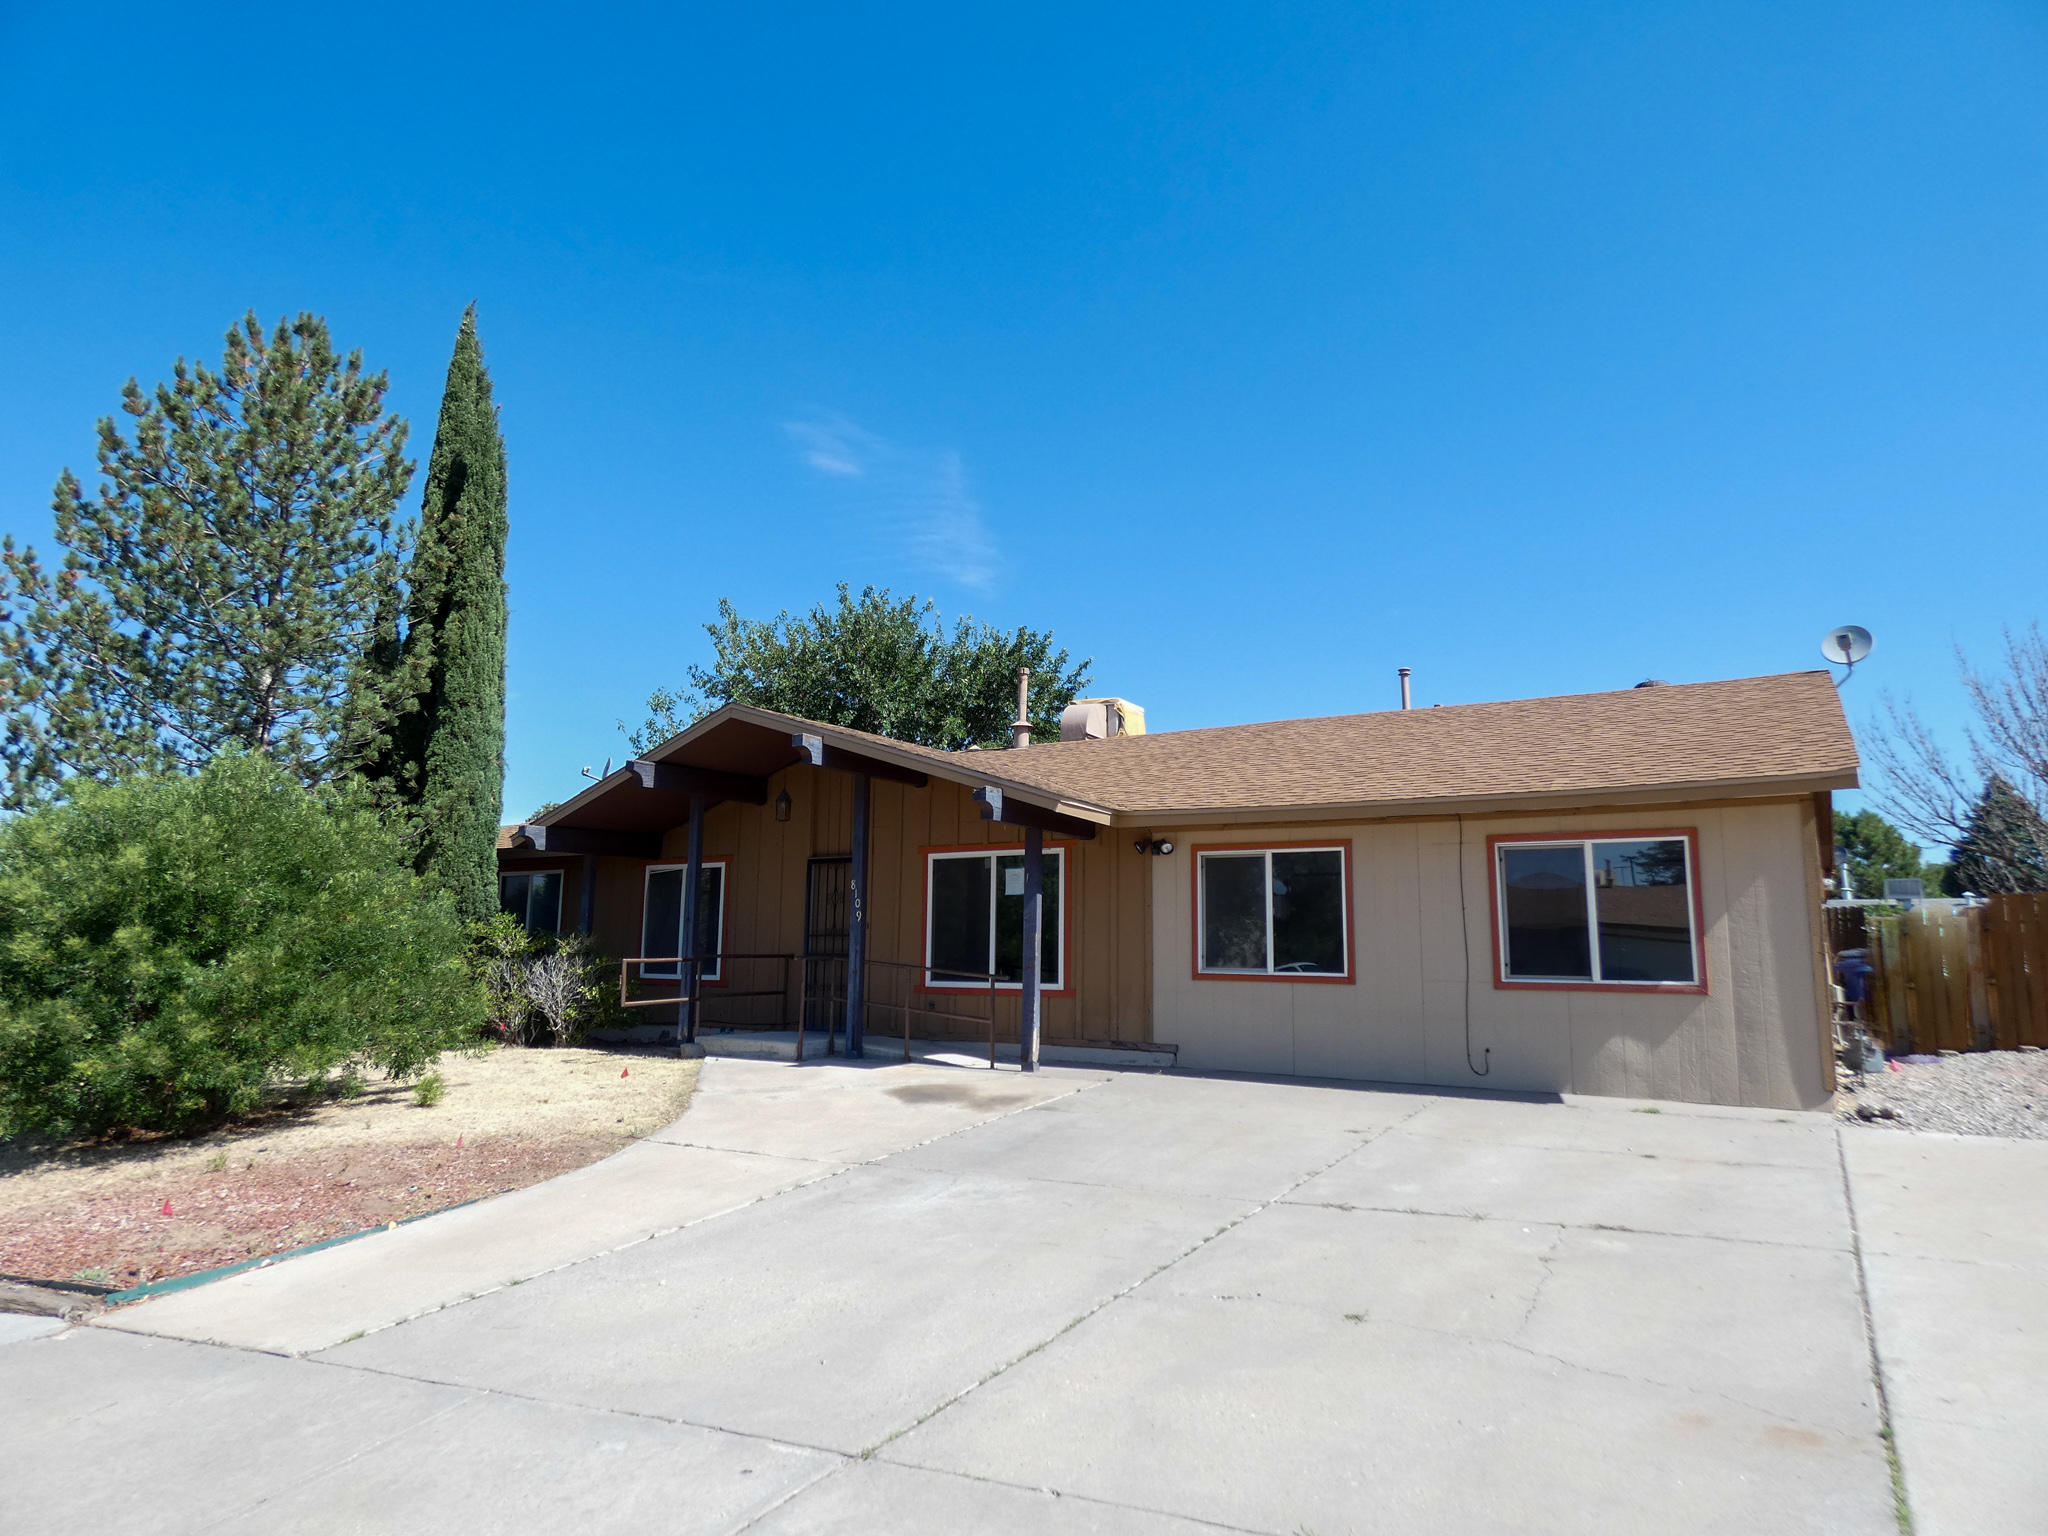 Owner occupant bids accepted thru 7/9/2020  @ 10:59 PM MST. HUD homes are Sold As Is. No pre closing repairs or payments will be made for any reason. Home is insurable for FHA financing. For Utility Turn Ons: Approval must be granted in advance from HUDs Field Svc Mgr. In cases where plumbing deficiencies exist approval for water turn on may be denied. Review PCR for utility turn on information. PCR is not to be relied upon in lieu of a home inspection. ''Insurability subject to buyer's new appraisal.'' Equal Housing Opportunity $100 down payment on this HUD Home if financed with FHA-insured financing for Owner Occupant buyers.